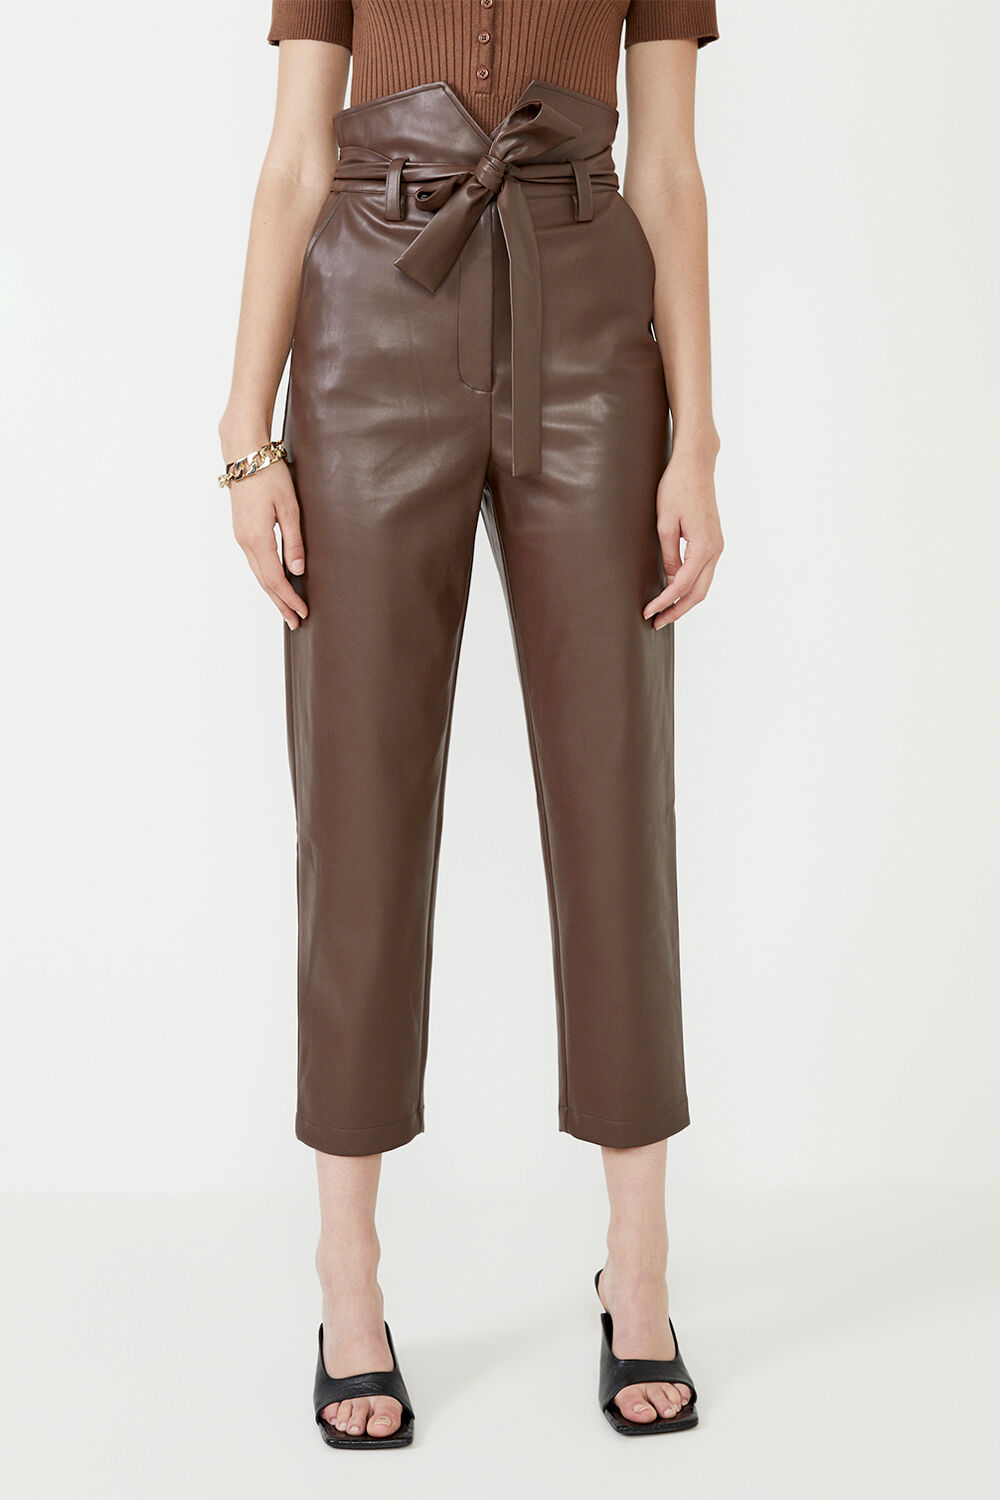 DEBBIE VEGAN LEATHER PANT  in colour CHOCOLATE BROWN